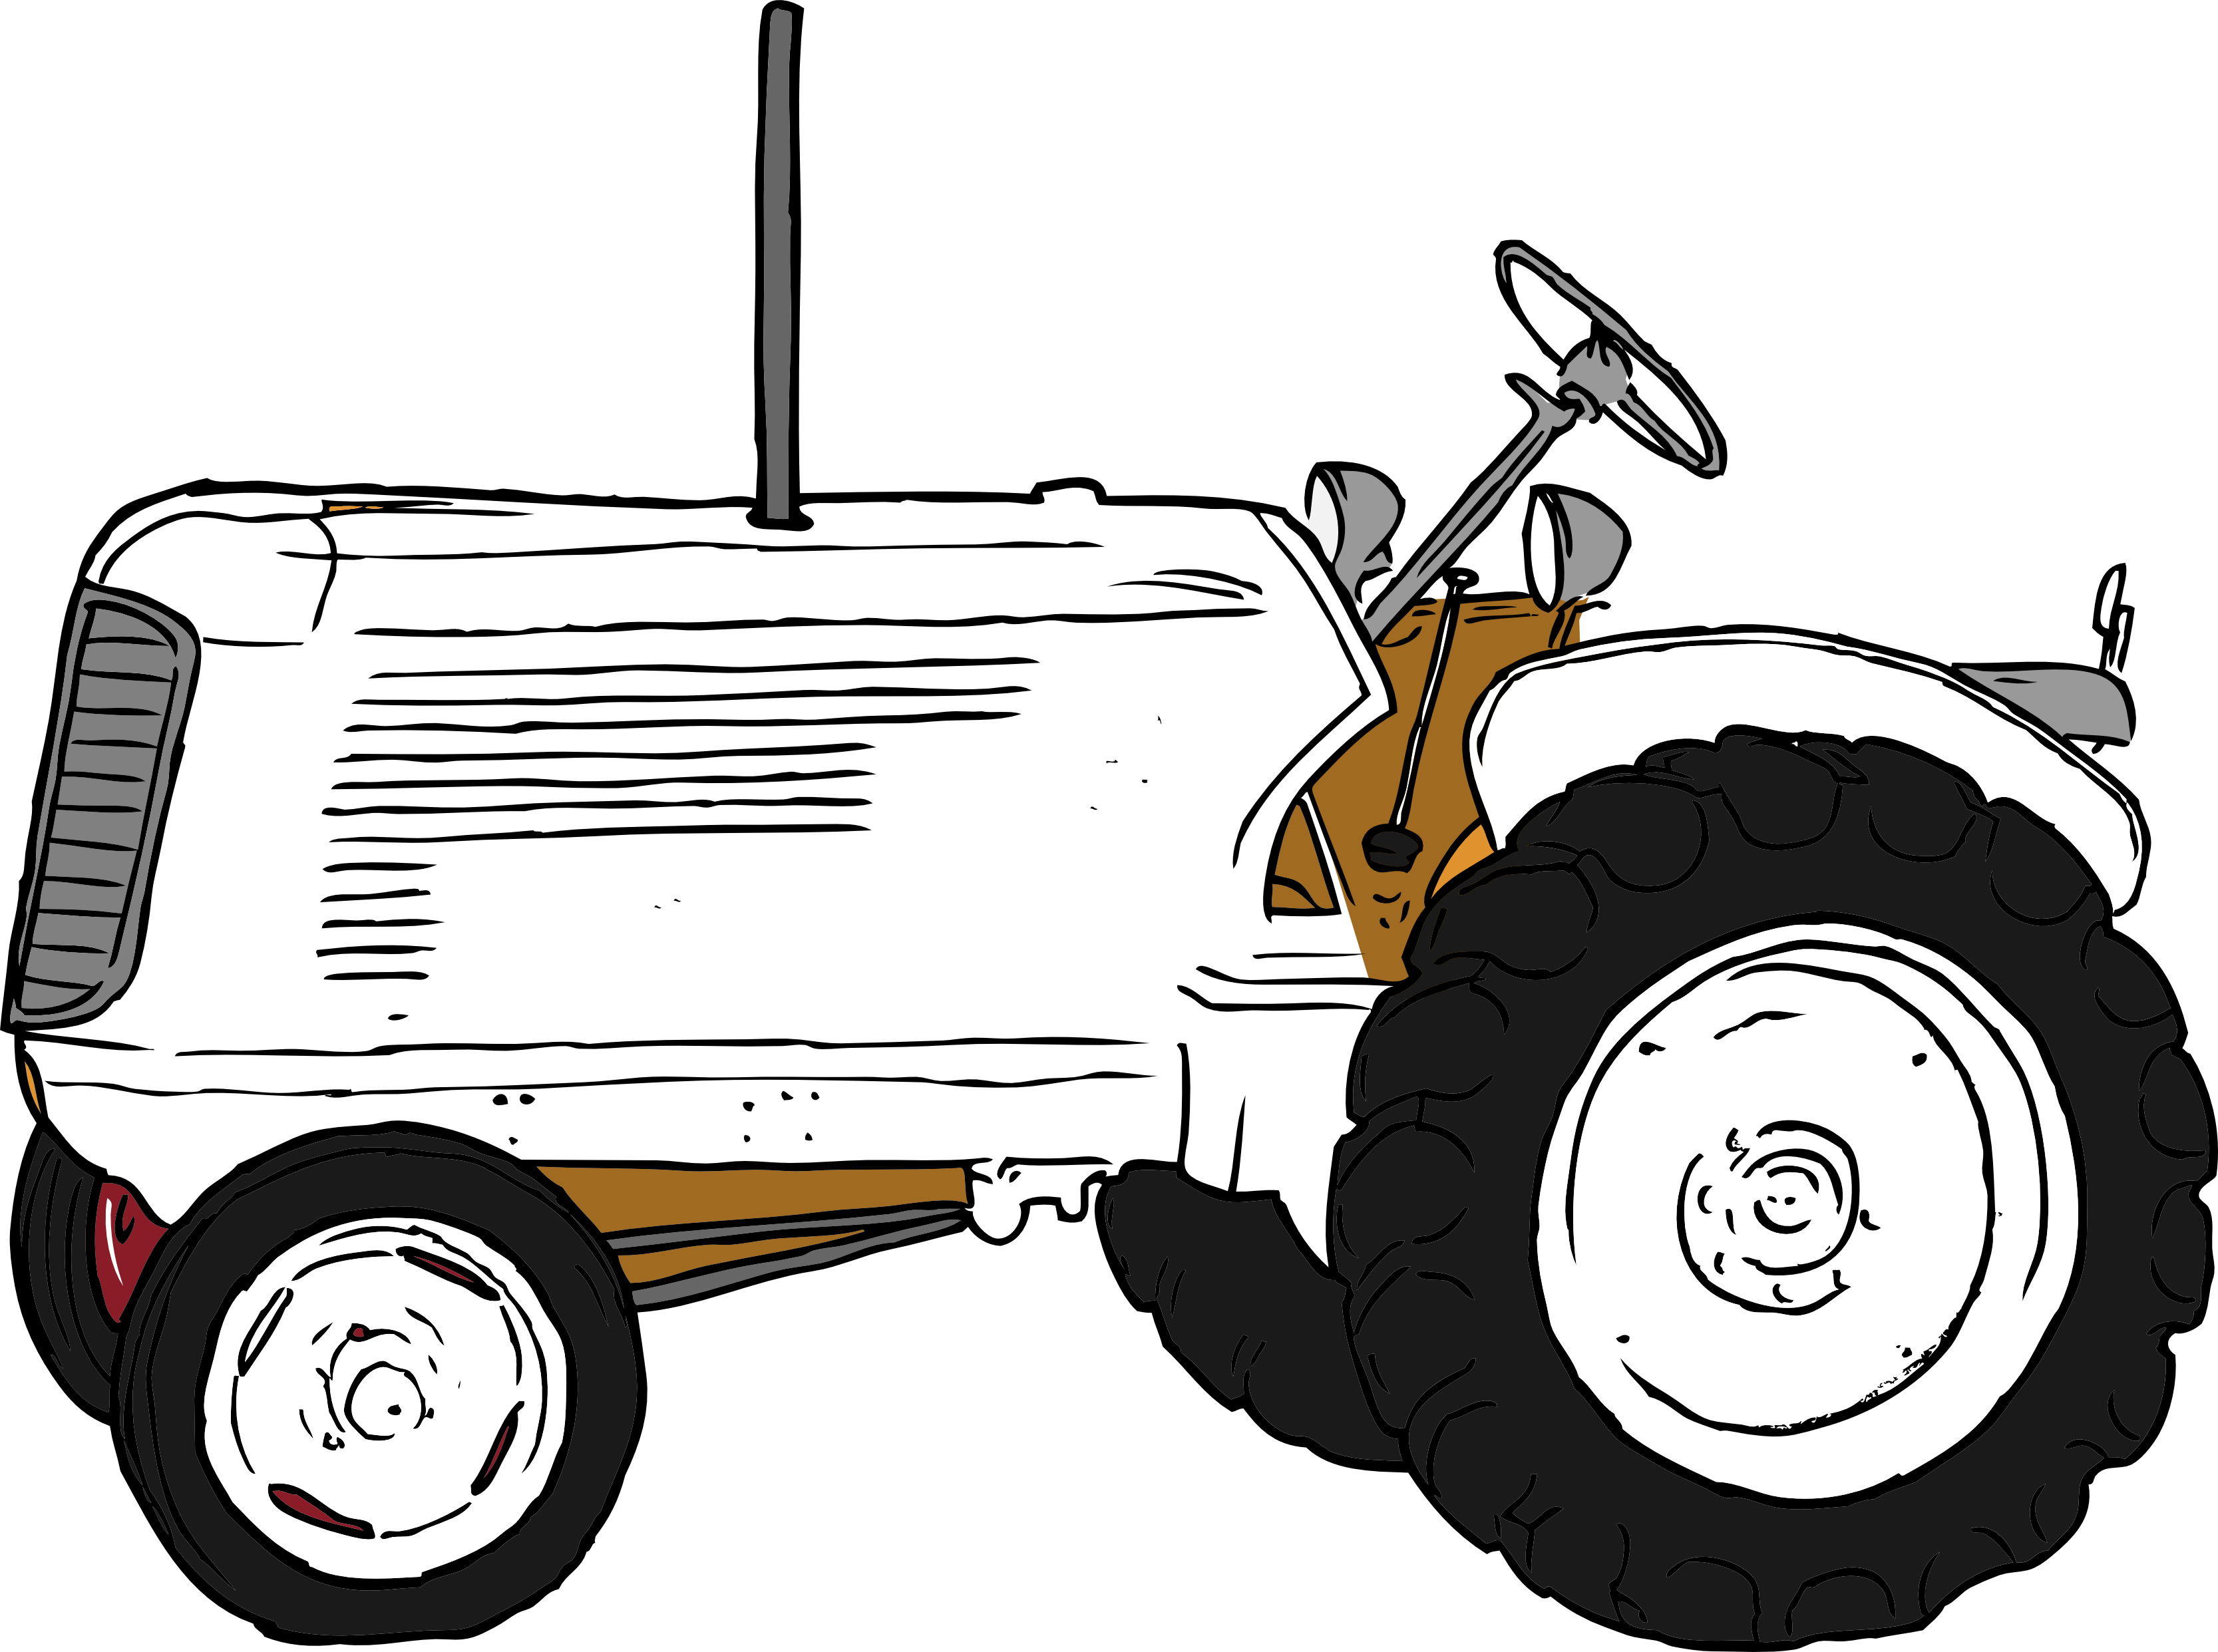 Line Drawing Tractor : Tractor clipart black and white imgkid the